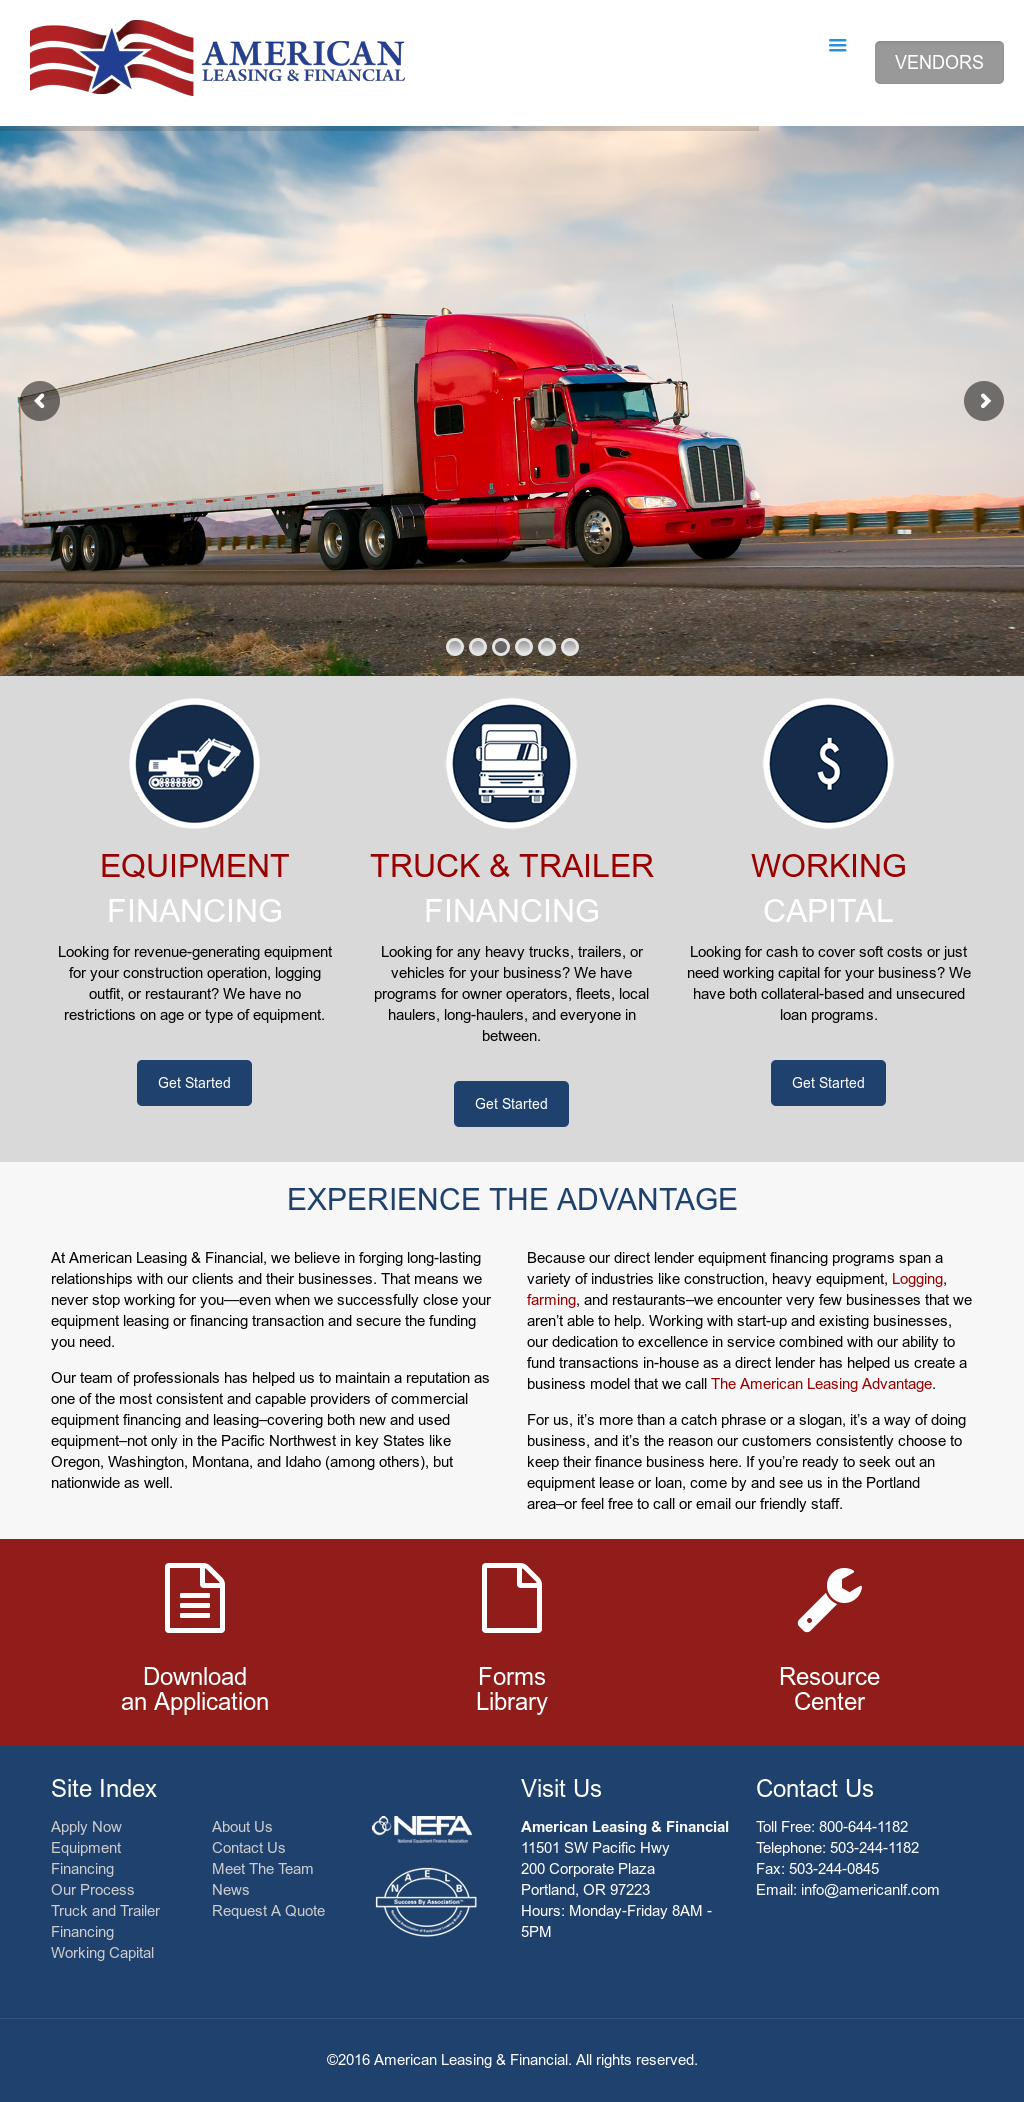 Americanlf Competitors, Revenue and Employees - Owler Company Profile